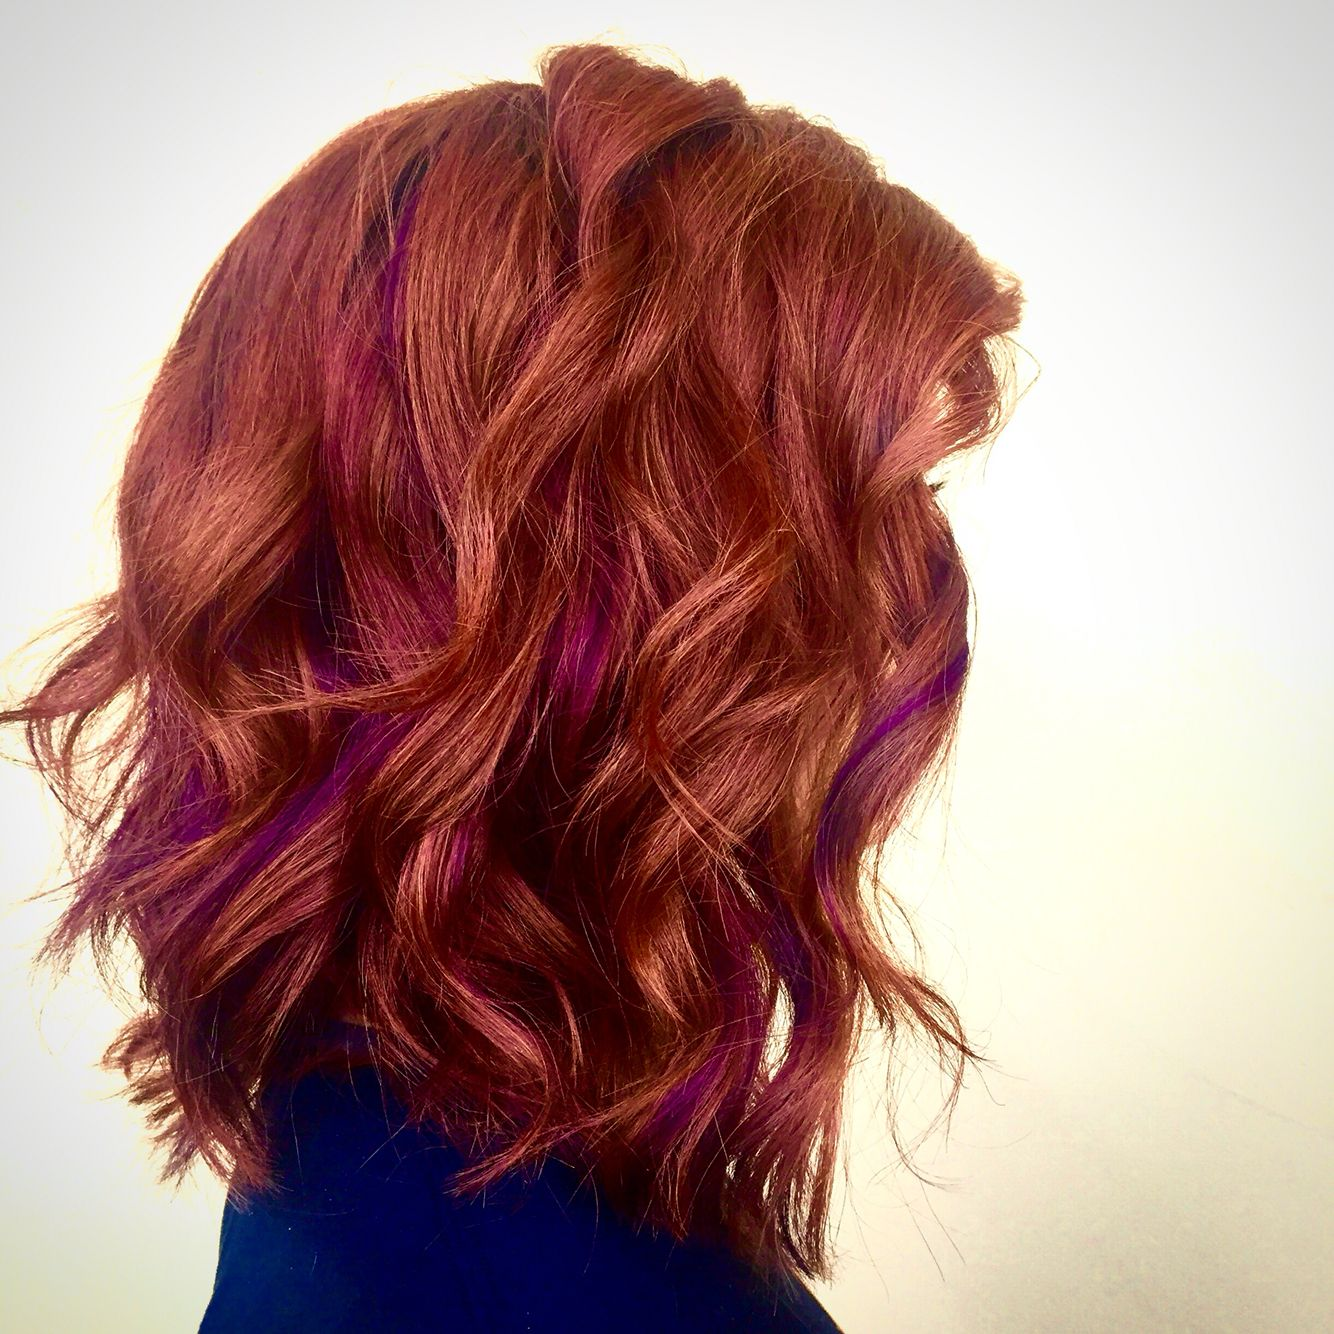 Red And Purple Hair Redhair Naturalred Purplehair Ginger Purple Hair Purple Hair Highlights Red Purple Hair